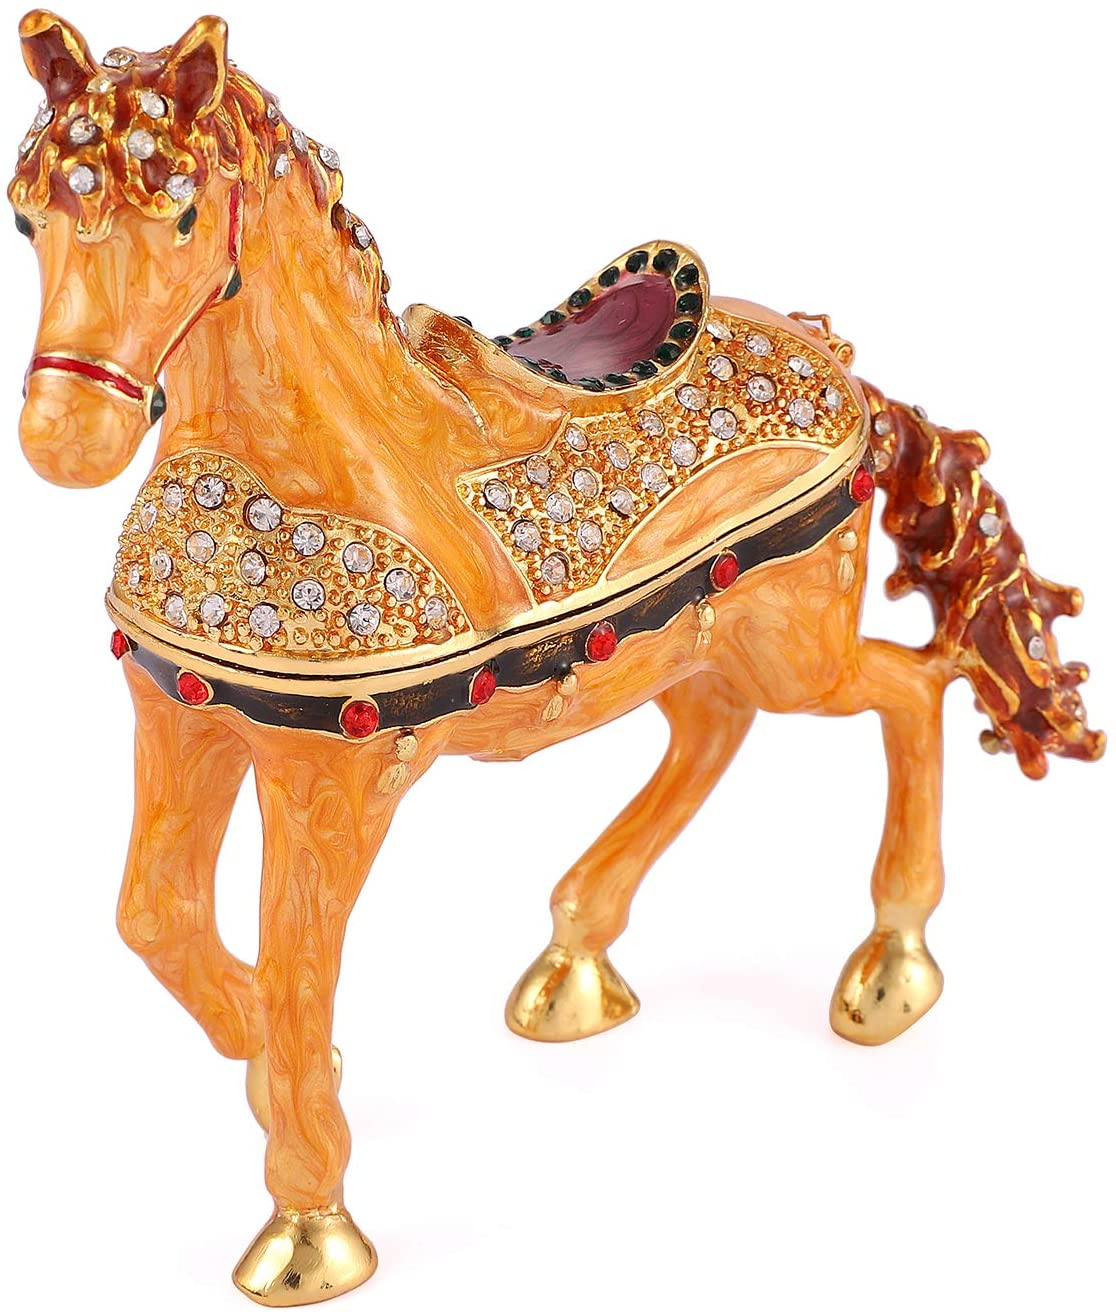 QIFU Vintage Style Hand Painted Horse Shape Jewelry Trinket Box With Rich Enamel And Sparkling Rhinestones | Unique Gift Home Decor | Best Ornament Your Collection